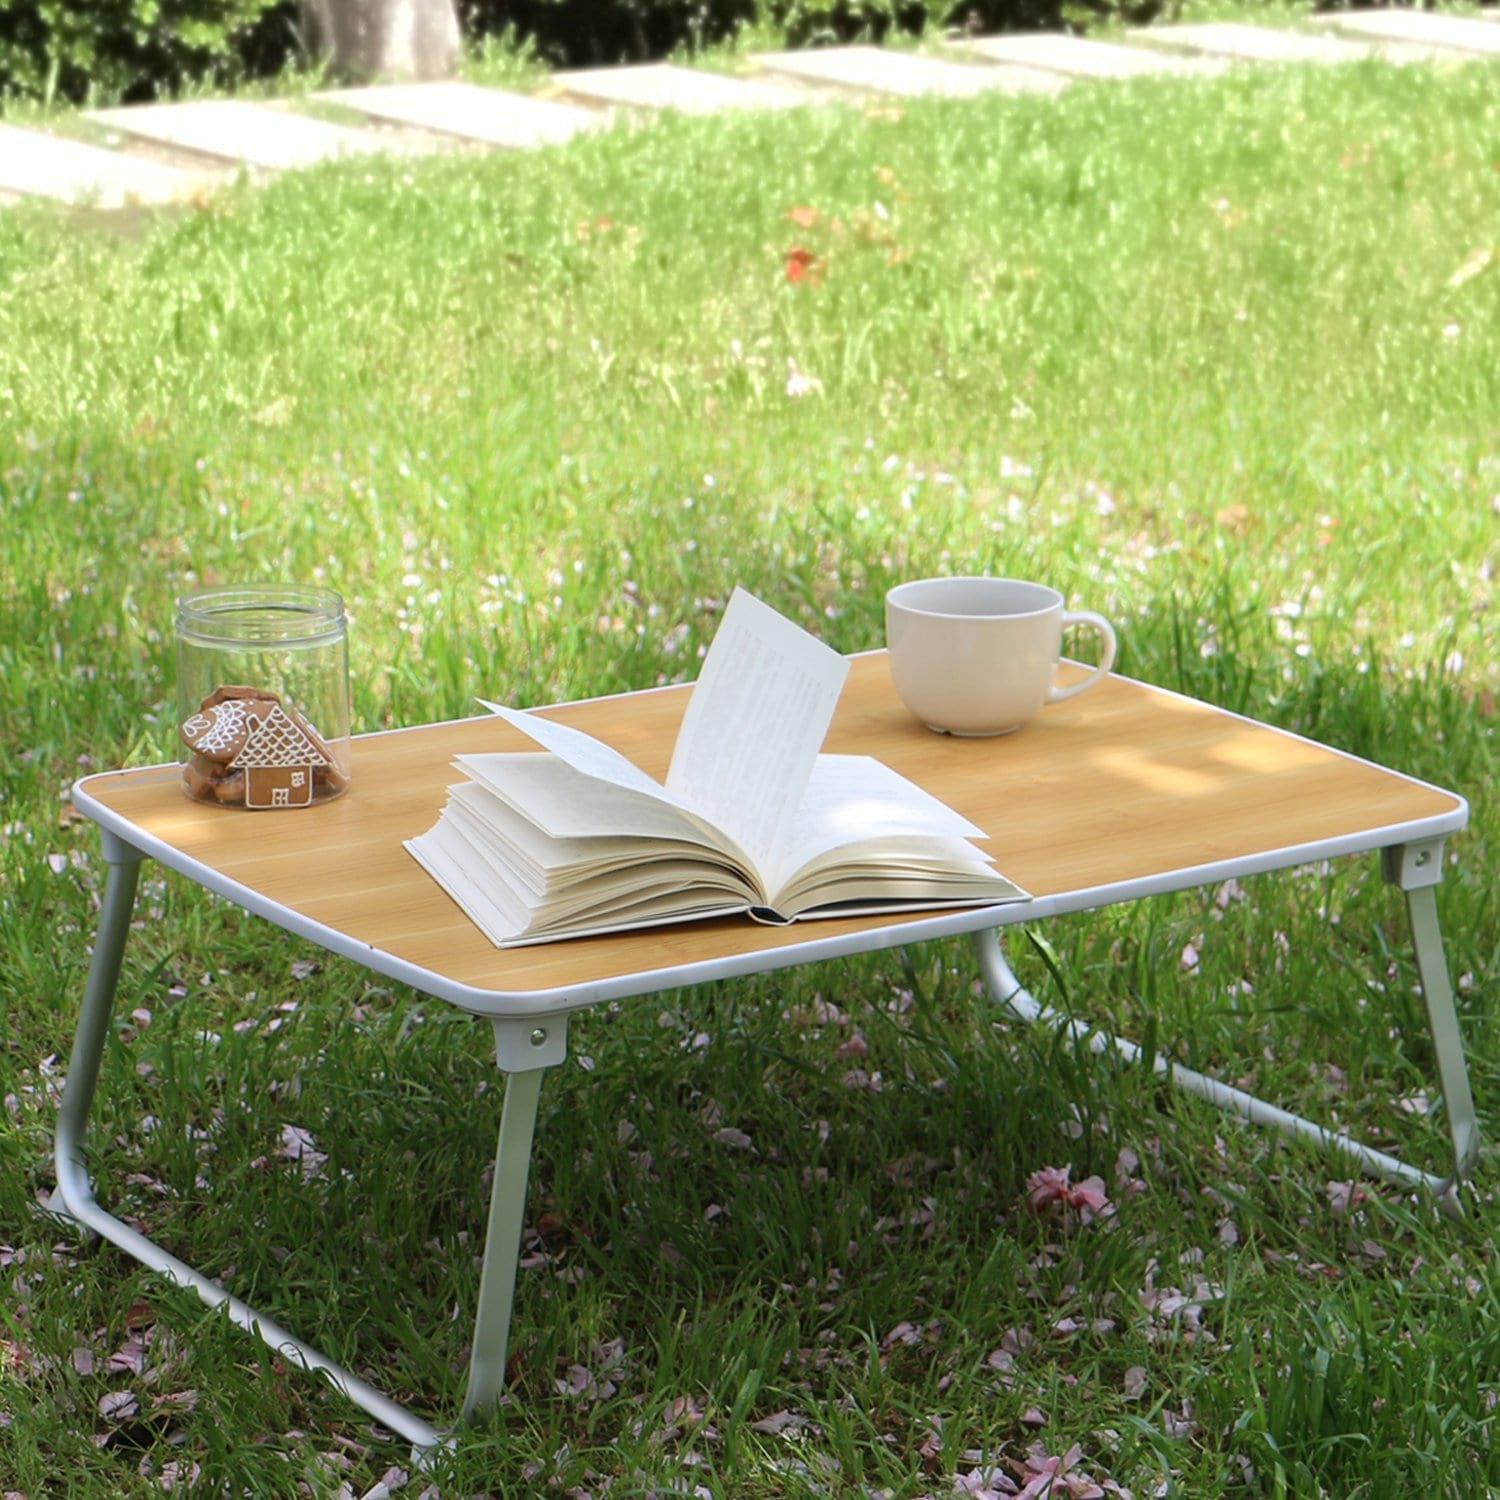 Superjare Bed Table on Grass